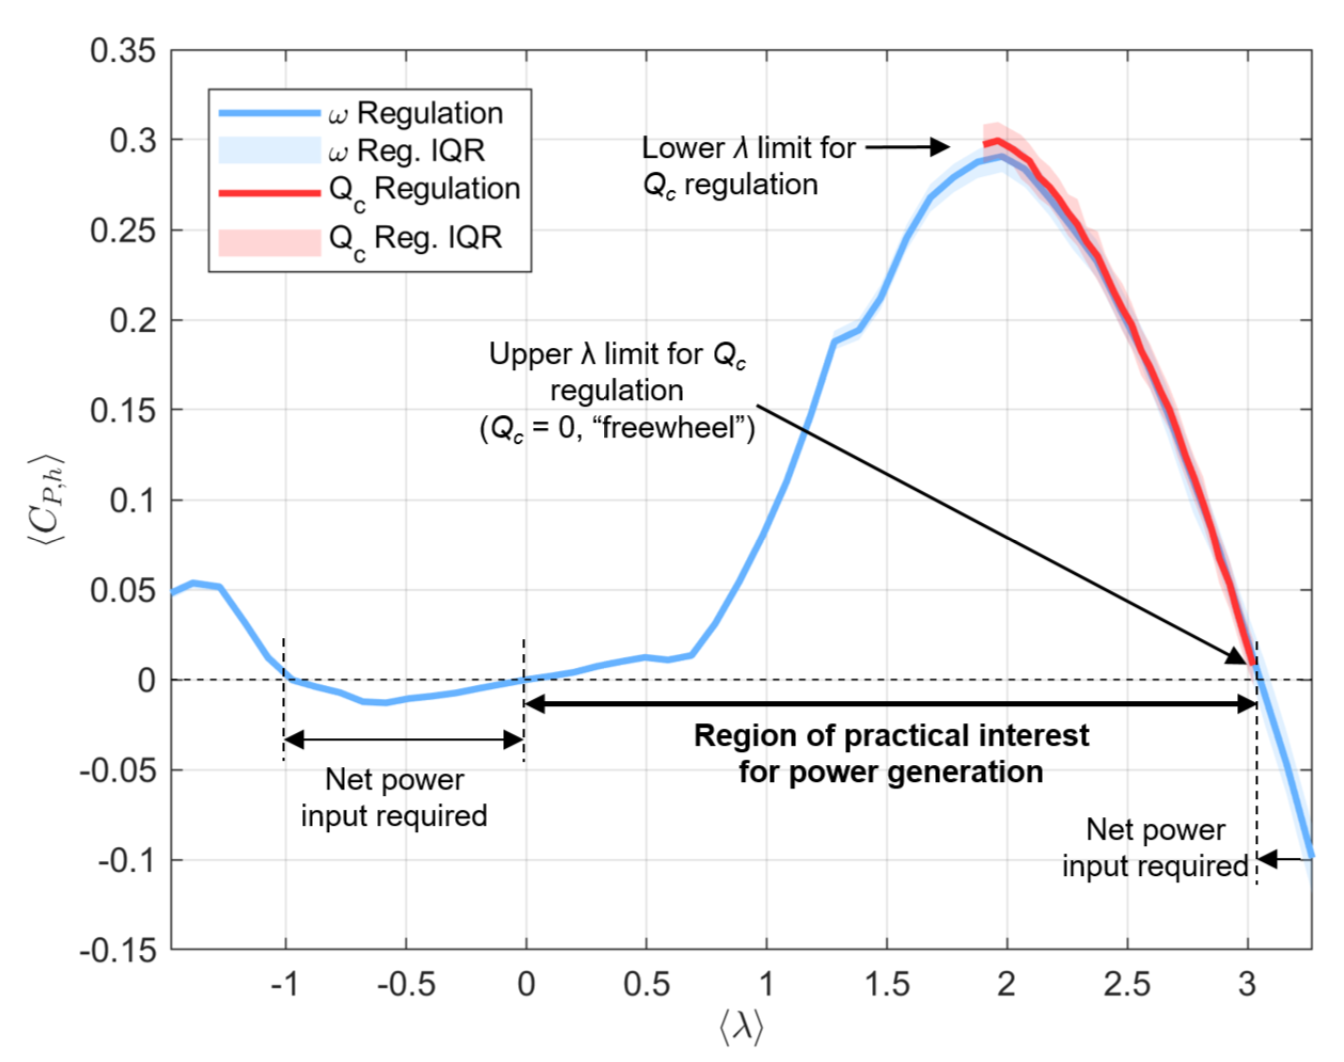 A plot comparing speed-regulated (blue) versus torque-regulated (red) turbine control and the resulting power output (y-axis). While torque-regulated control produces slightly higher net power, speed-regulated control provides a larger range of operational speeds (x-axis) at only a limited net power cost.